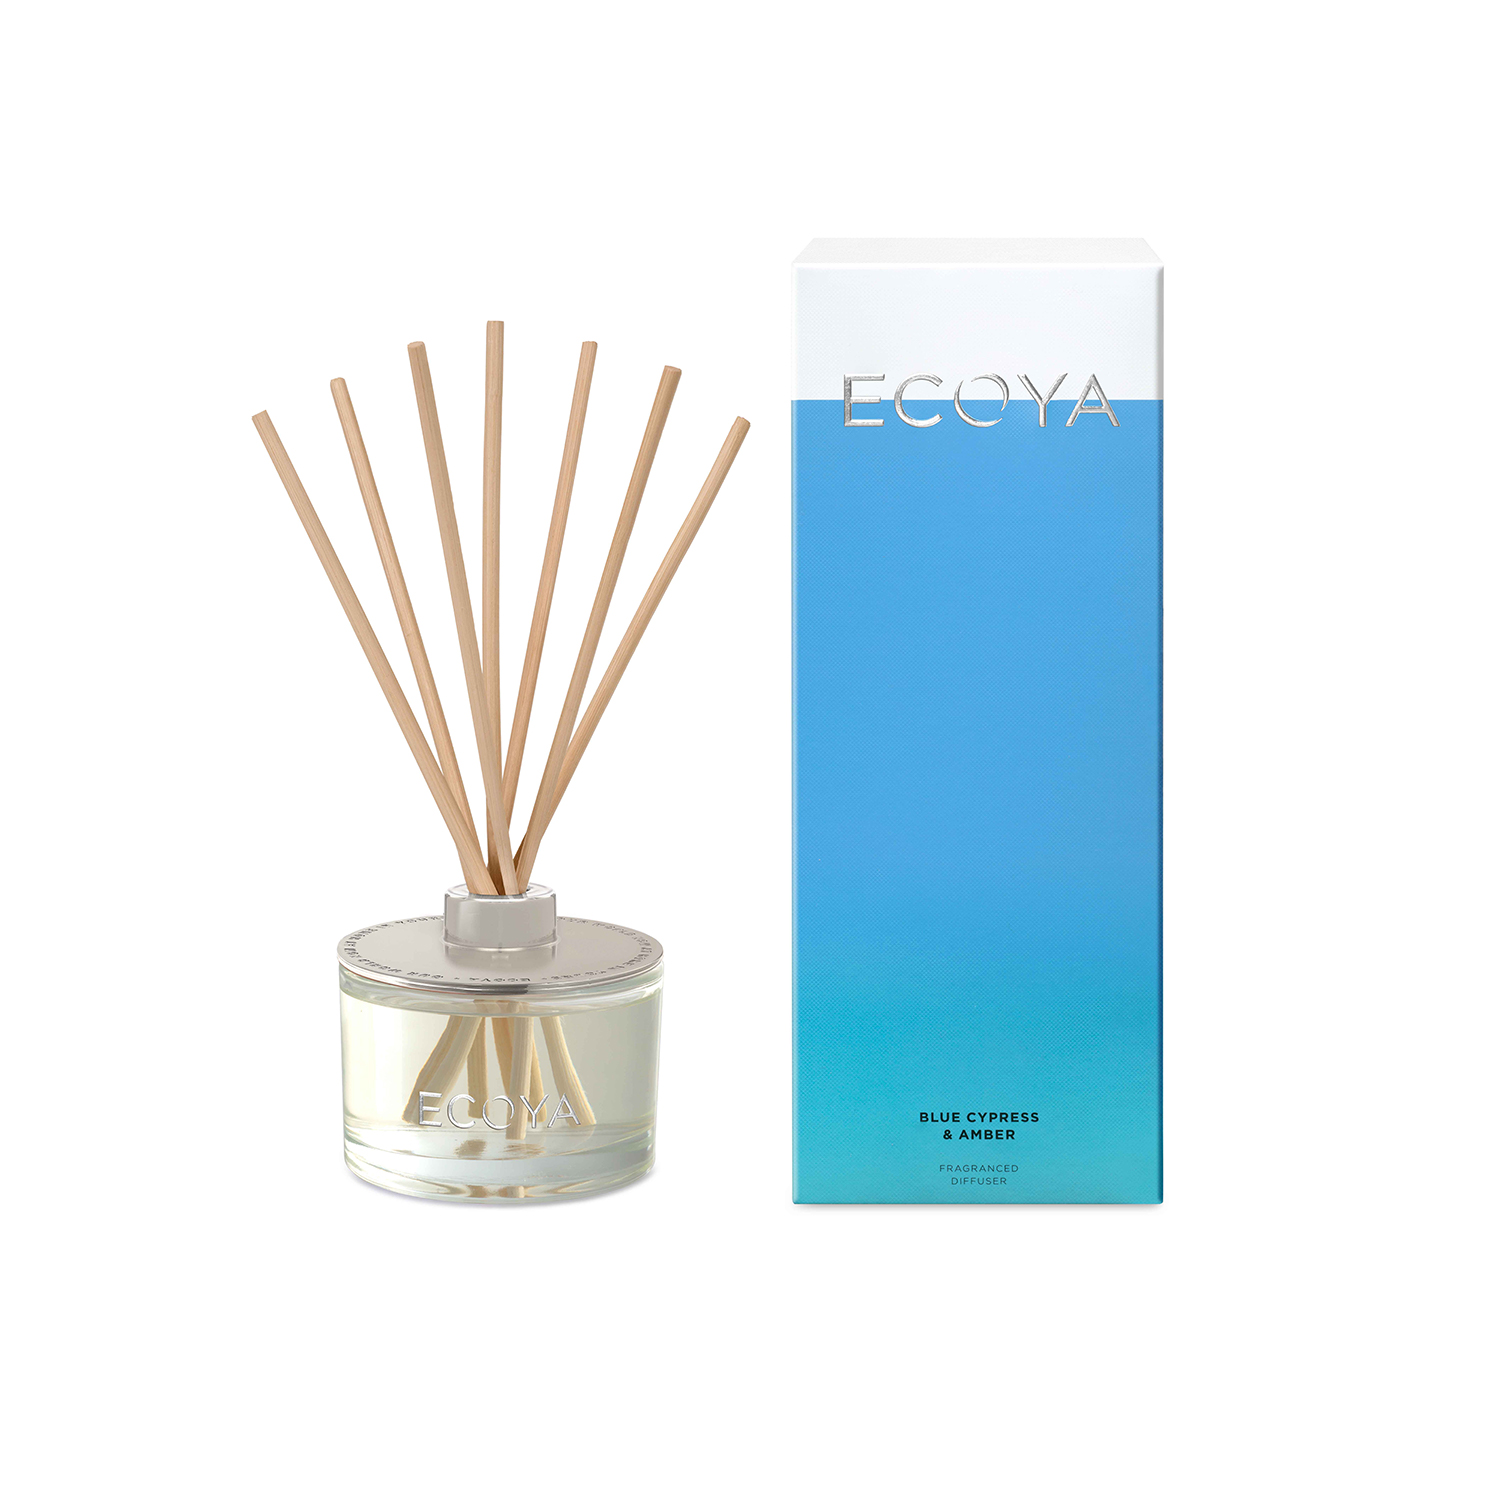 Ecoya Blue Cypress and Amber Reed Diffuser 200ml